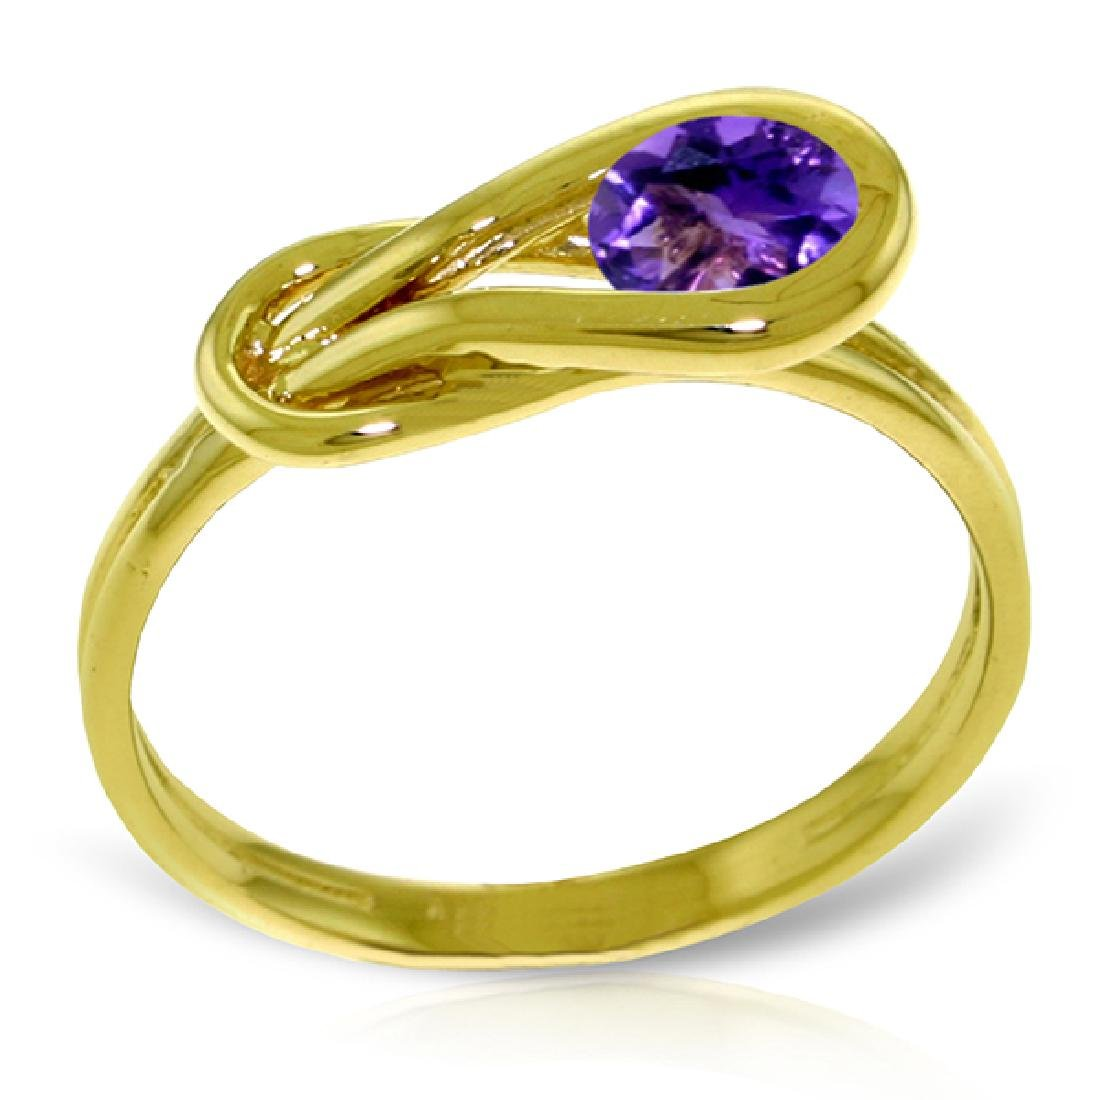 Genuine 0.65 ctw Amethyst Ring Jewelry 14KT Yellow Gold